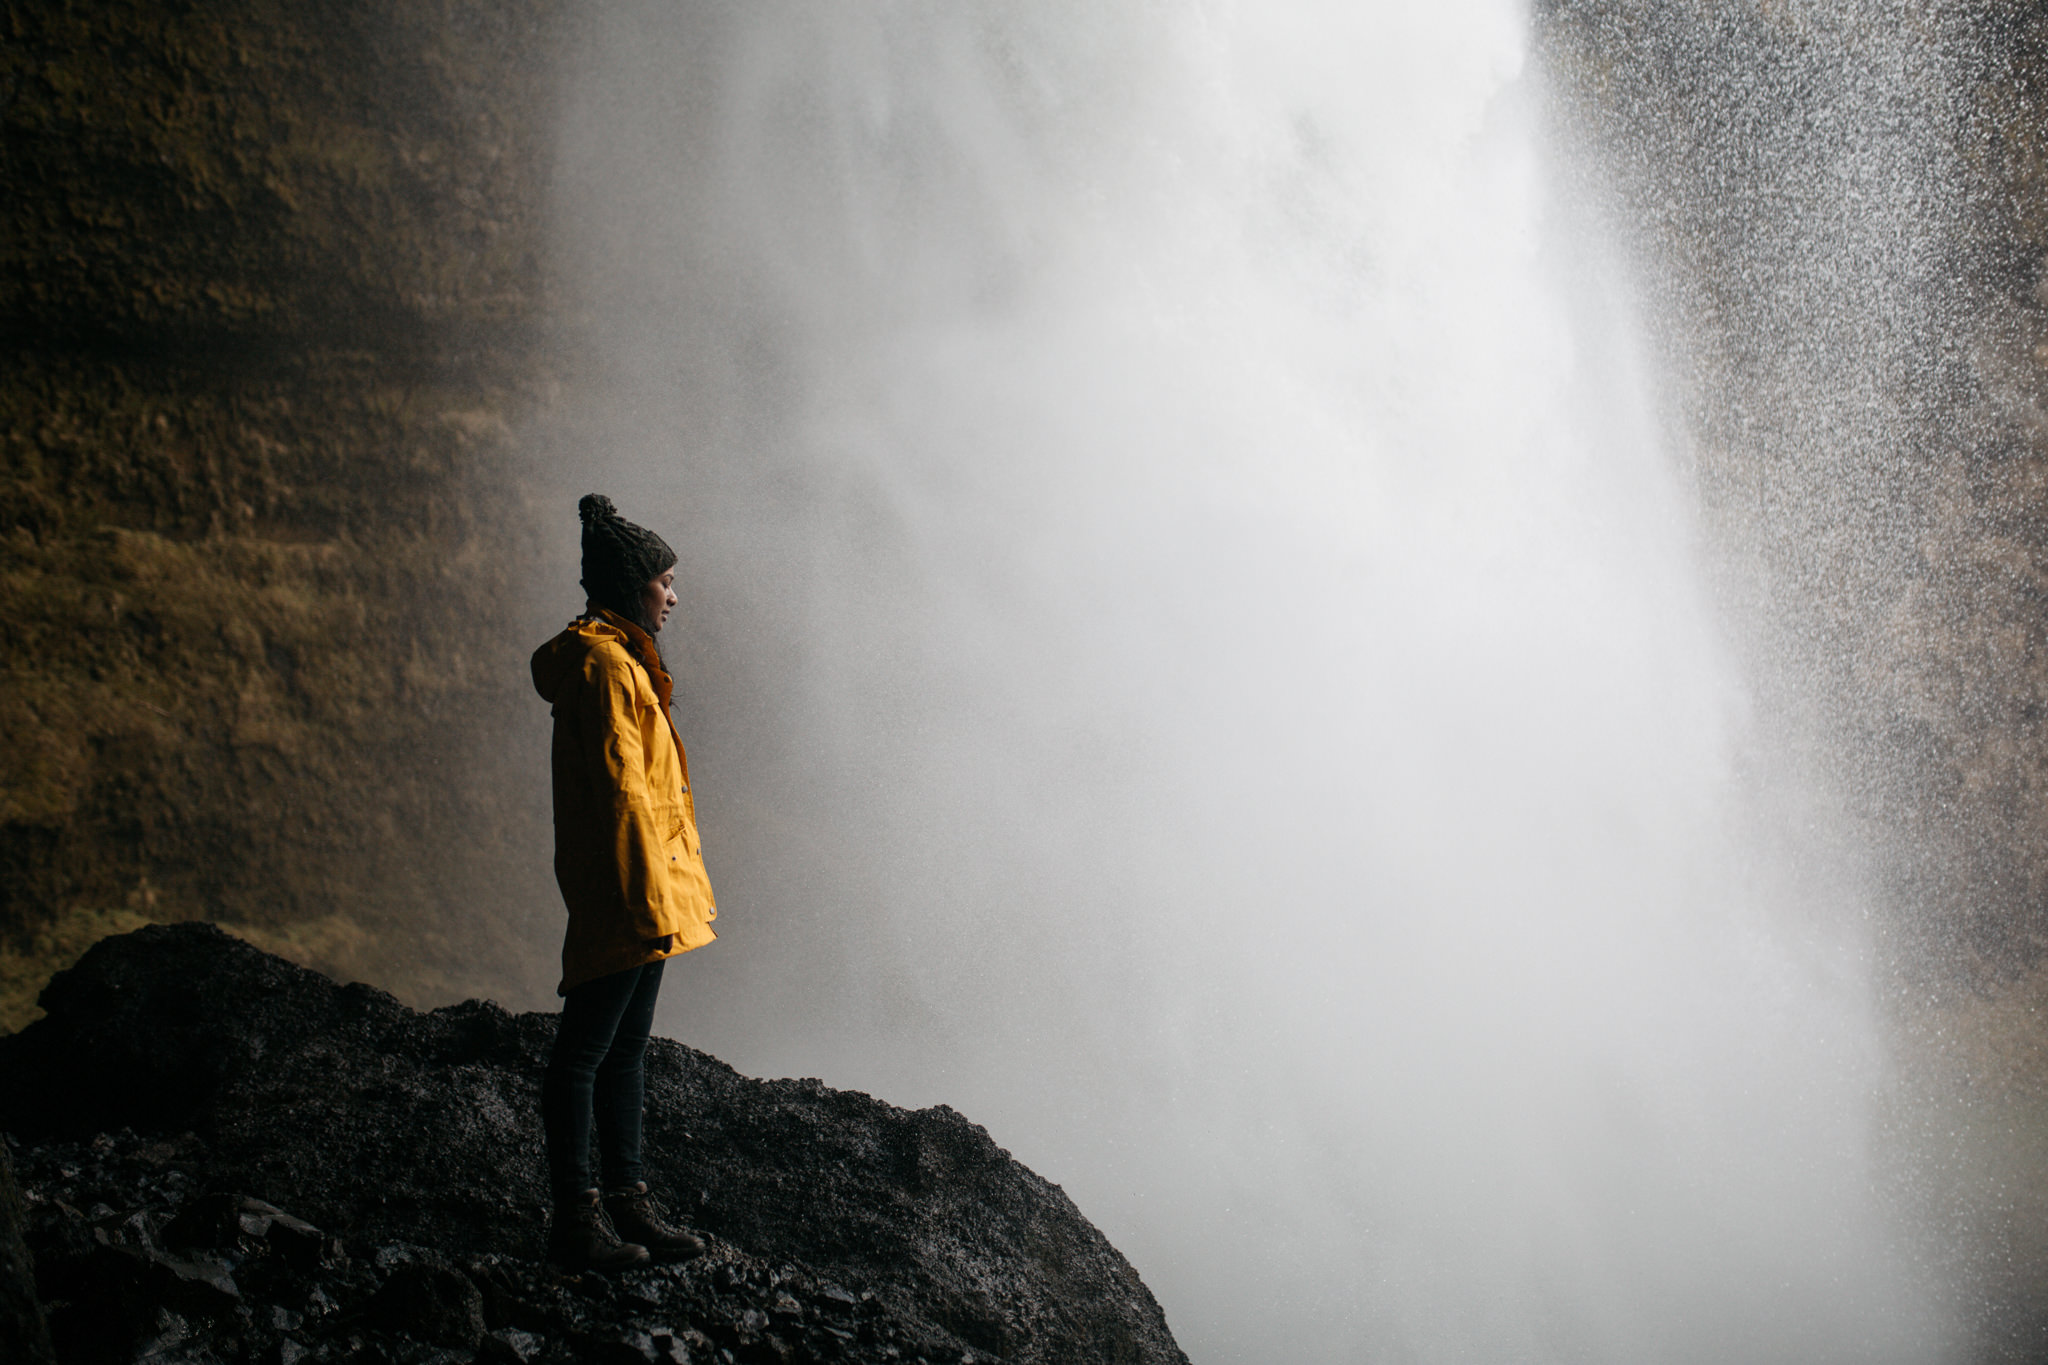 Monita behind hidden waterfall in Iceland with yellow jacket